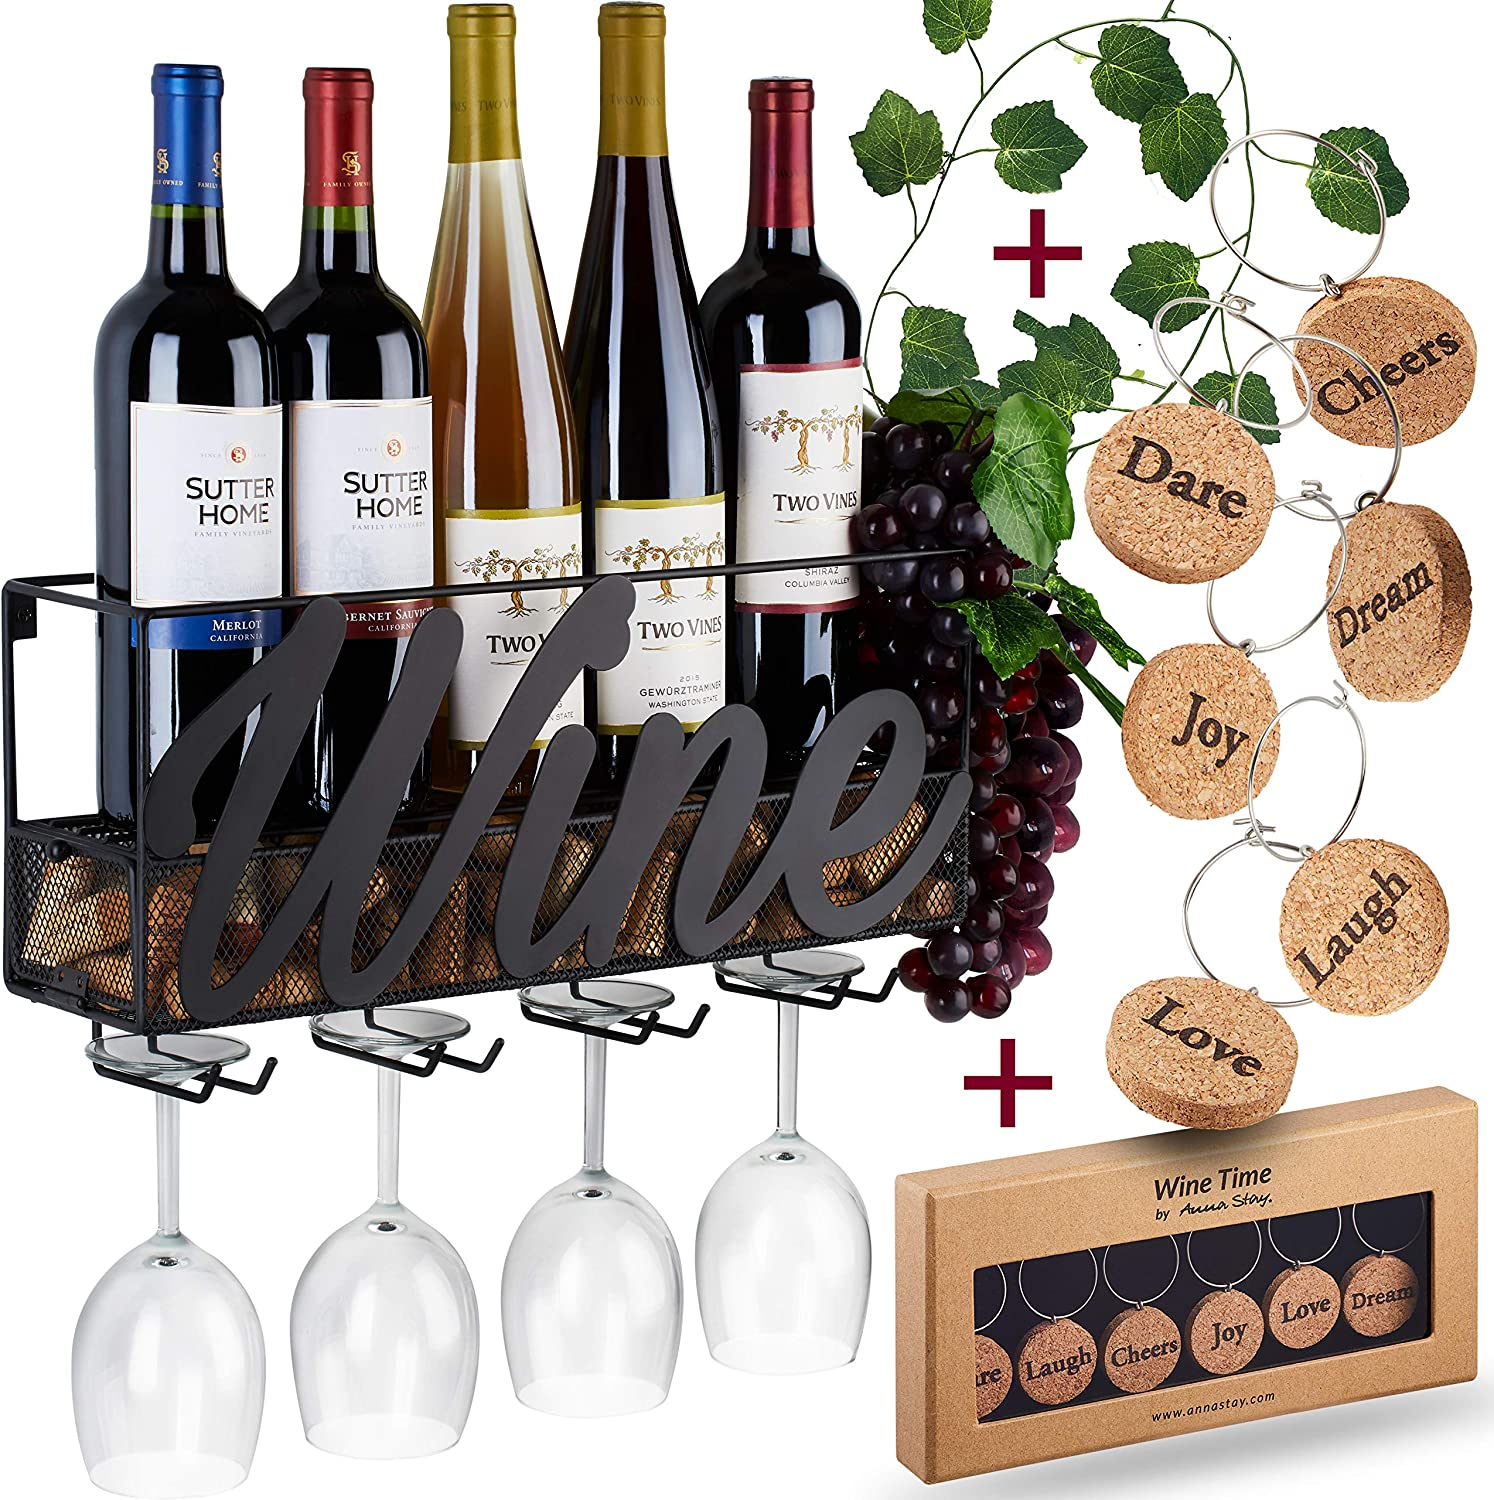 Wall Mounted Wine Rack Bottle Glass Holder Cork Storage Store Red White Champagne Comes With 6 Cork Wine Charms Home Kitchen Décor Designed